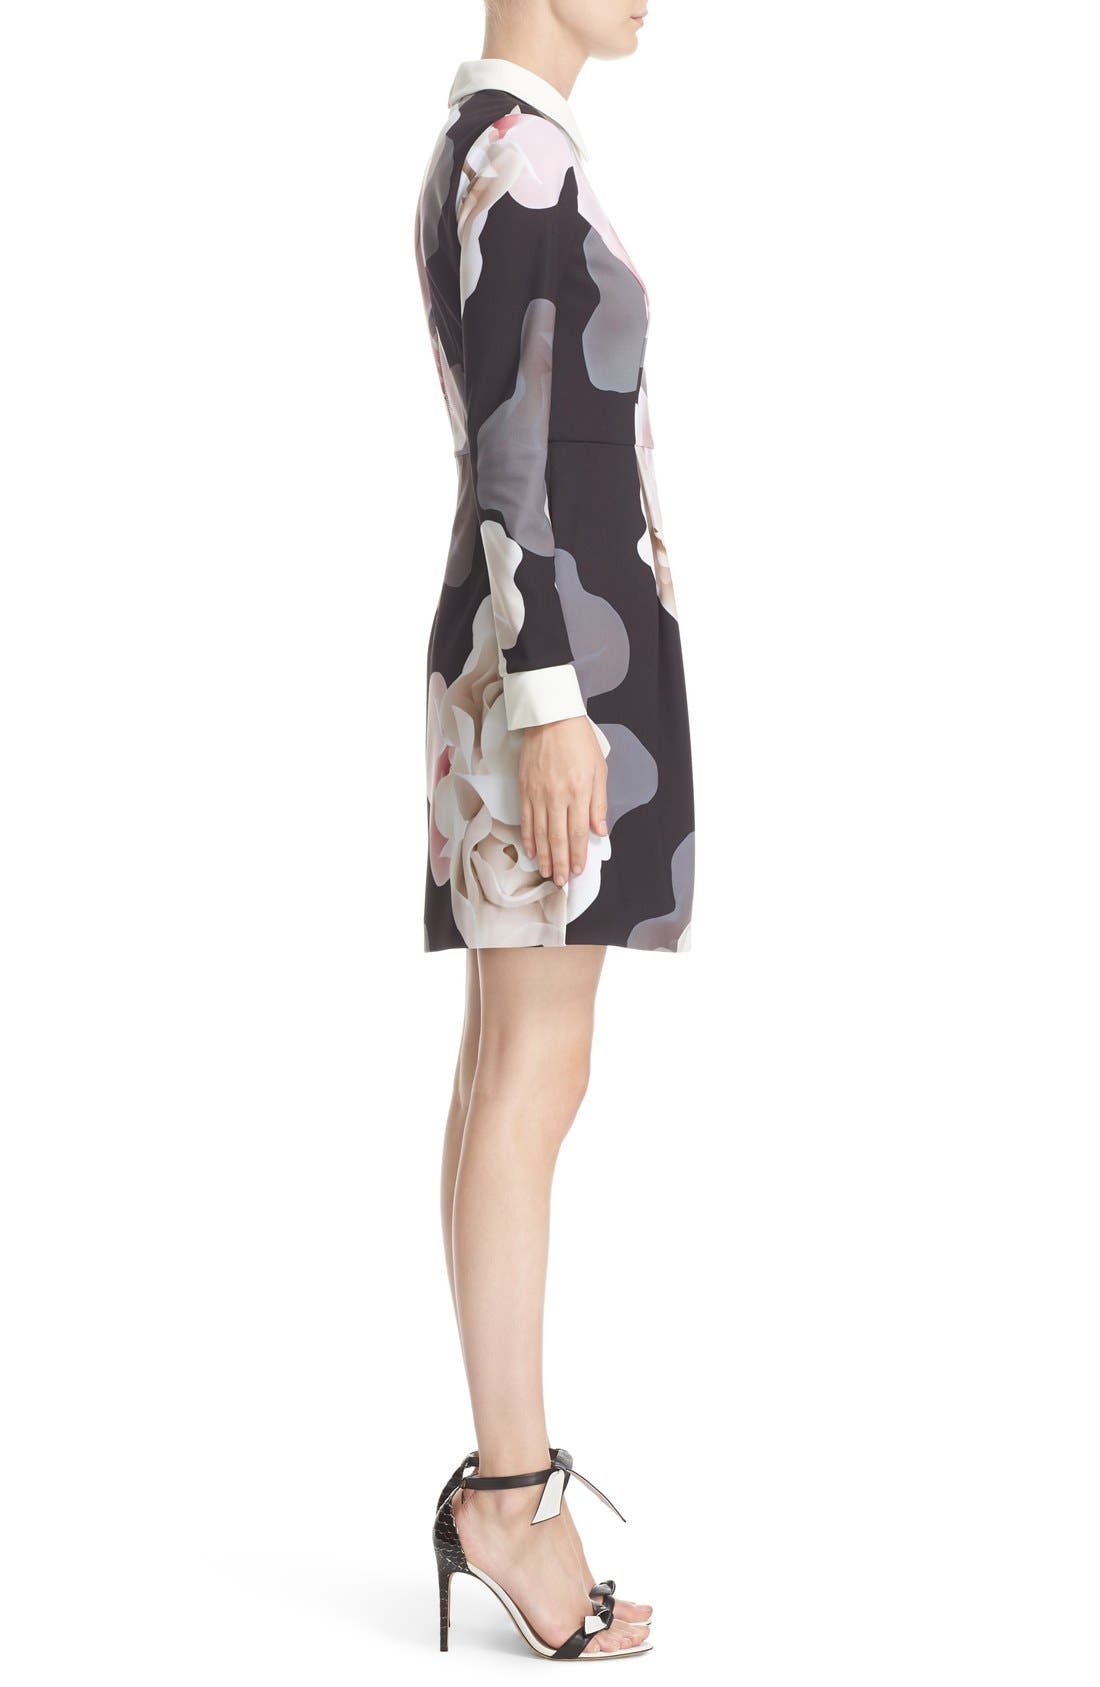 TED BAKER LONDON,                             Porcelain Rose Print Contrast Trim Fit & Flare Dress,                             Alternate thumbnail 5, color,                             001